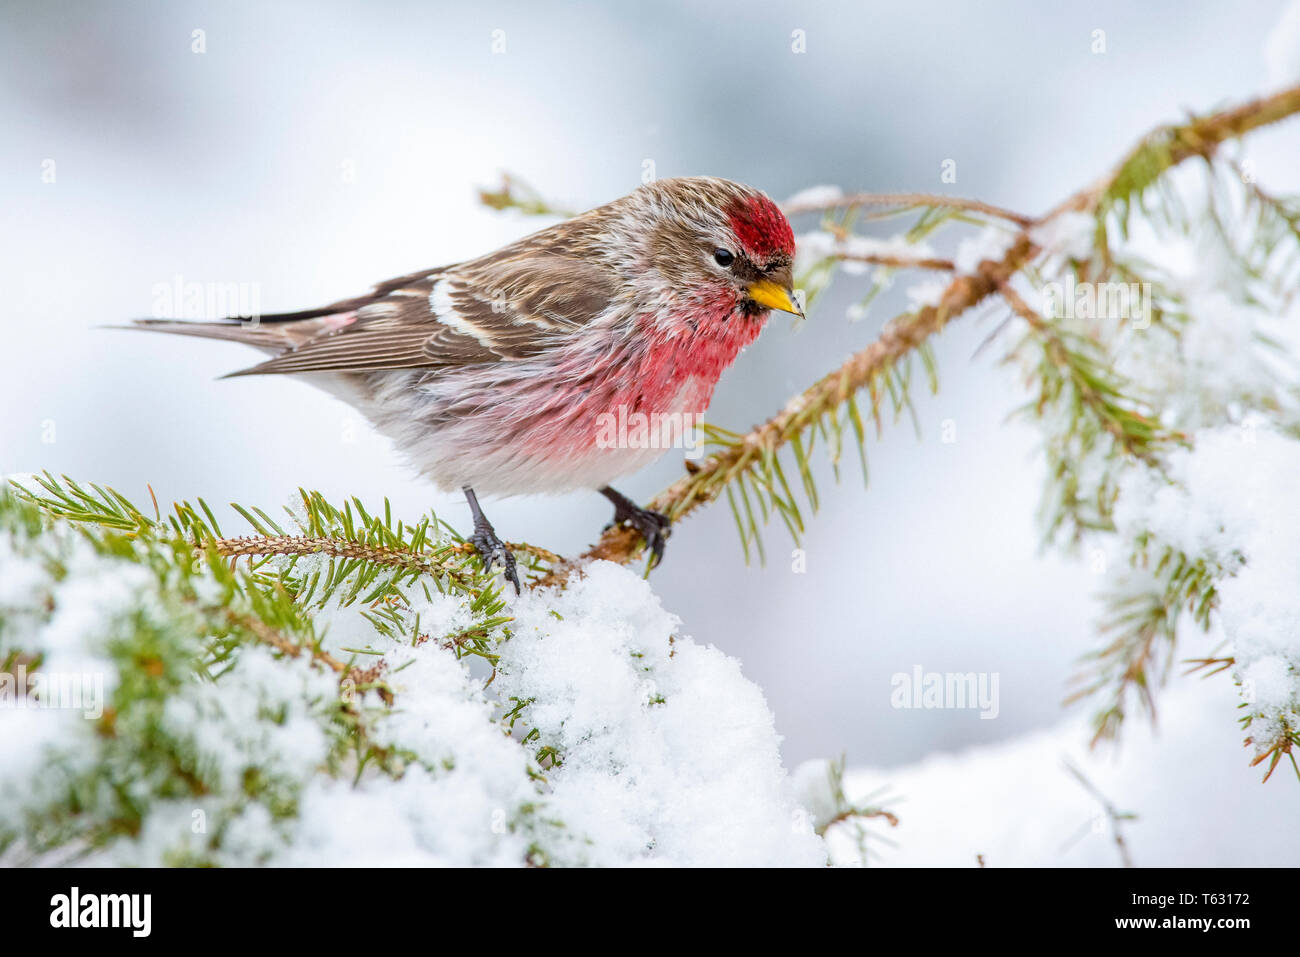 common redpoll, Acanthis flammea, in winter, Nova Scotia, Canada Stock Photo